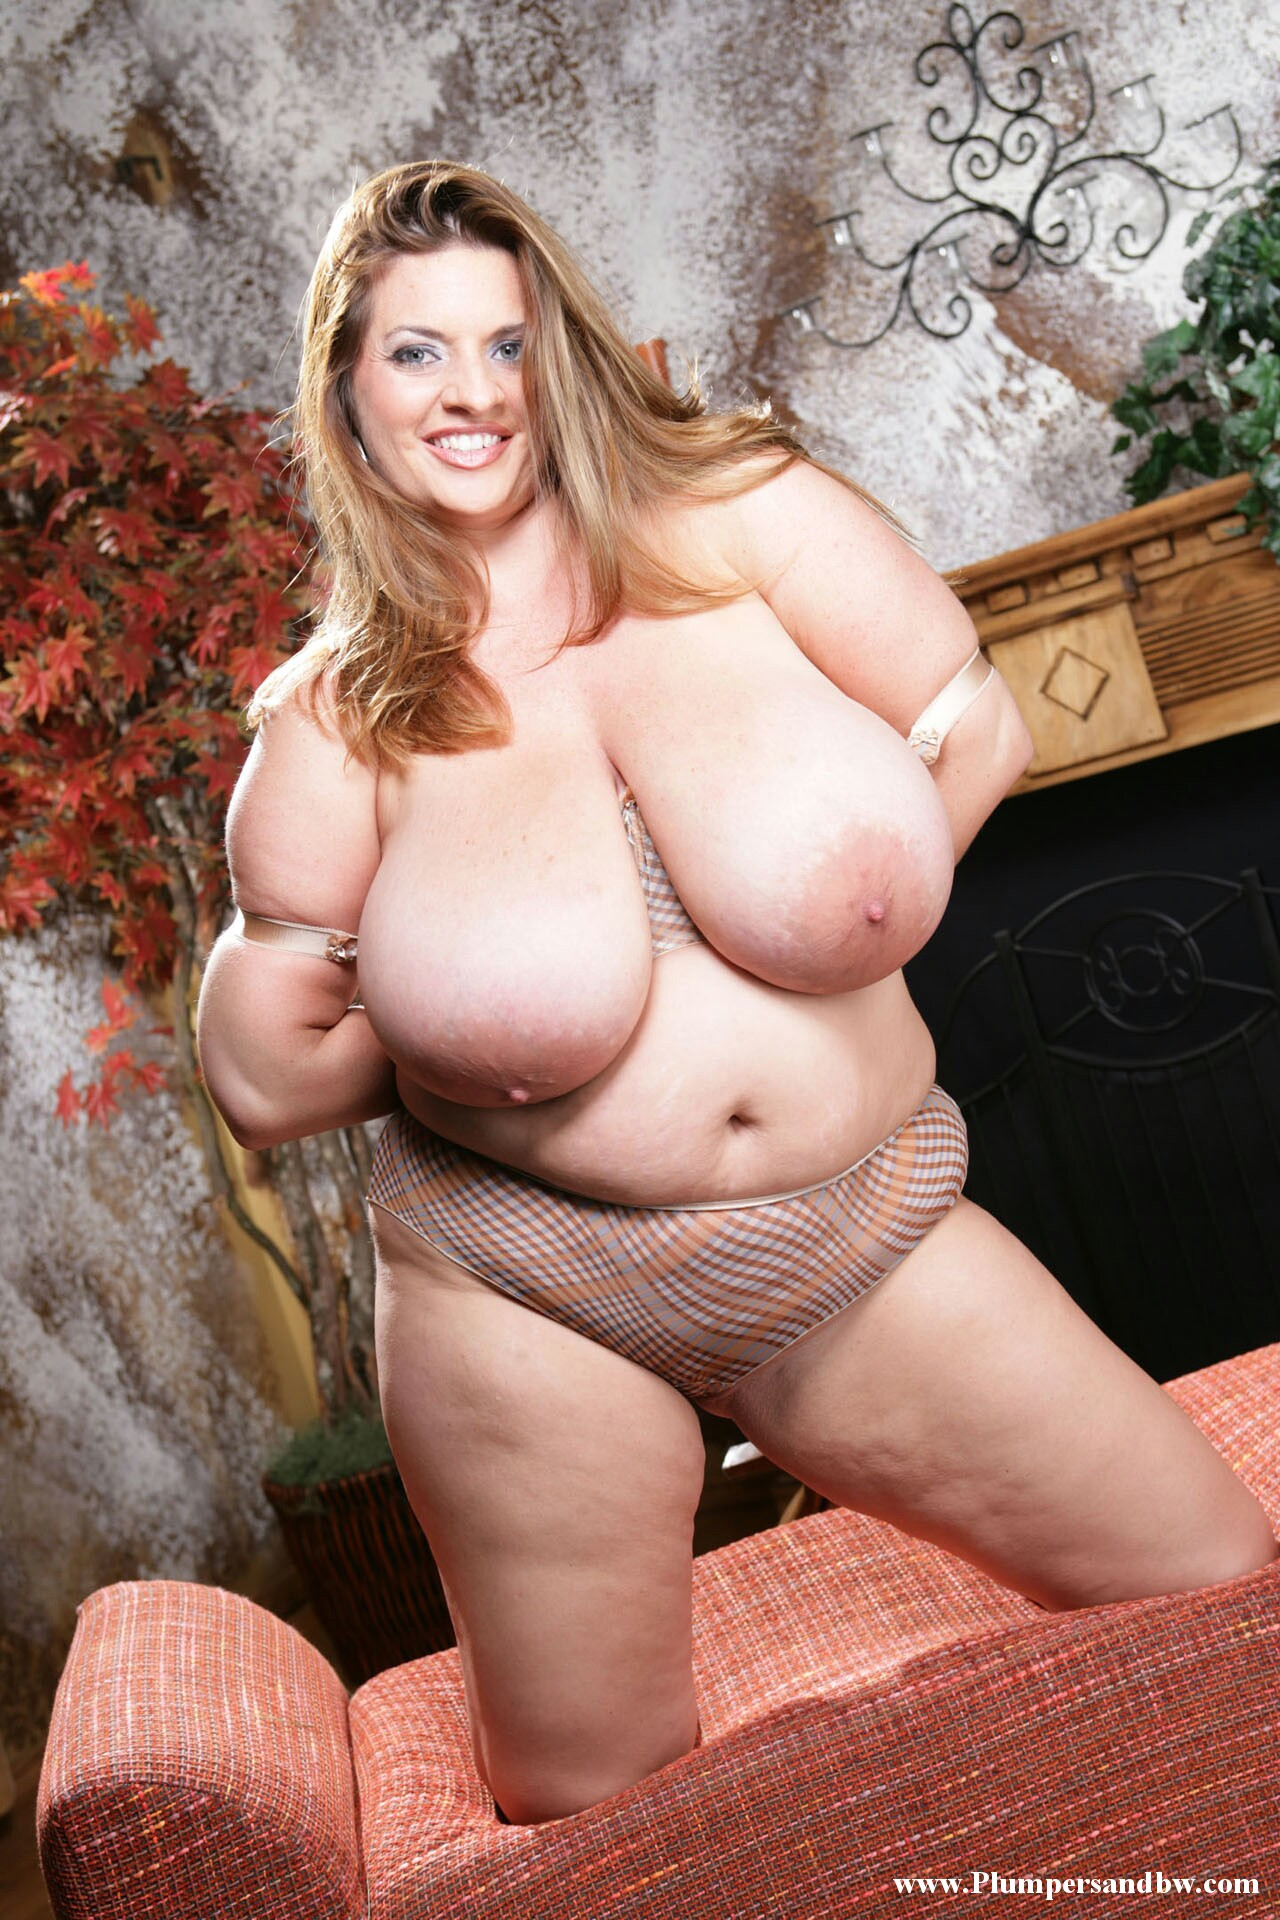 Opinion MARIA MOORE NAKED confirm. was